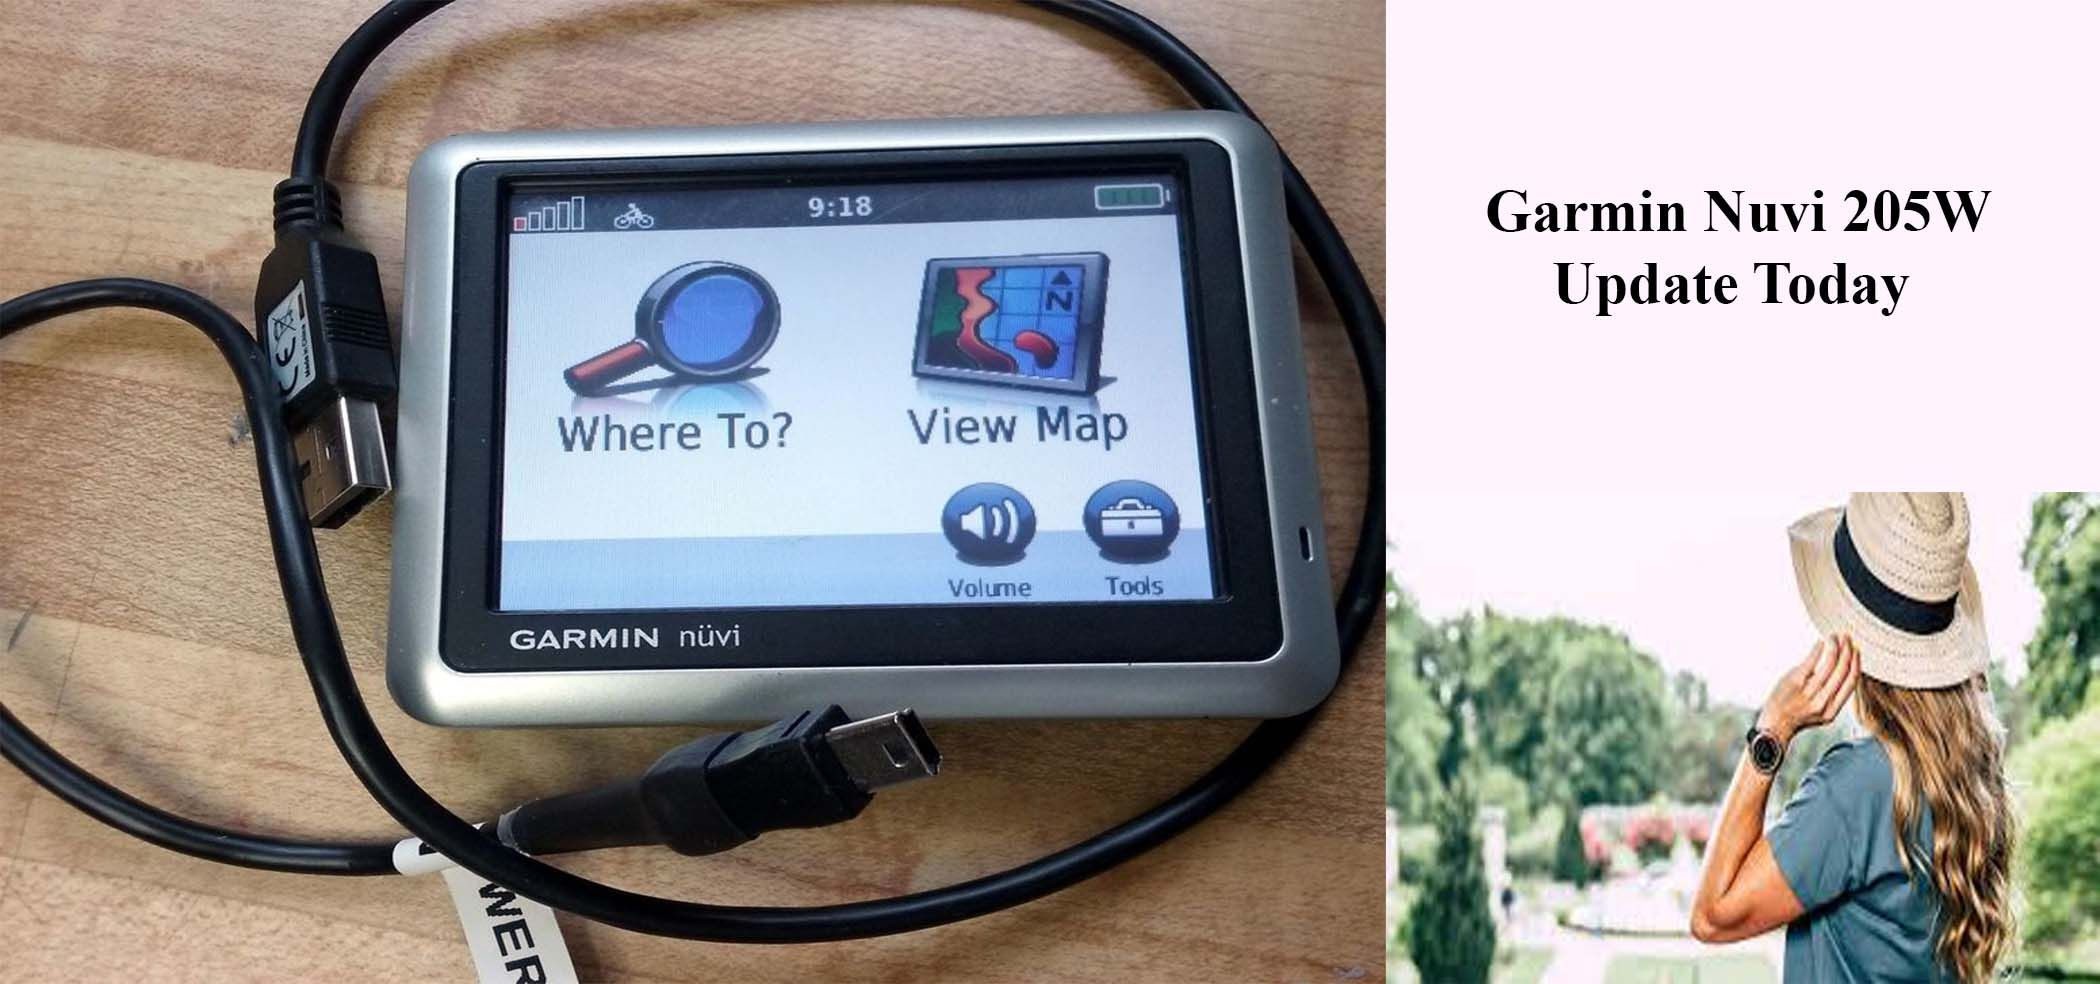 Updating garmin nuvi 205w free online dating sites in the philippines